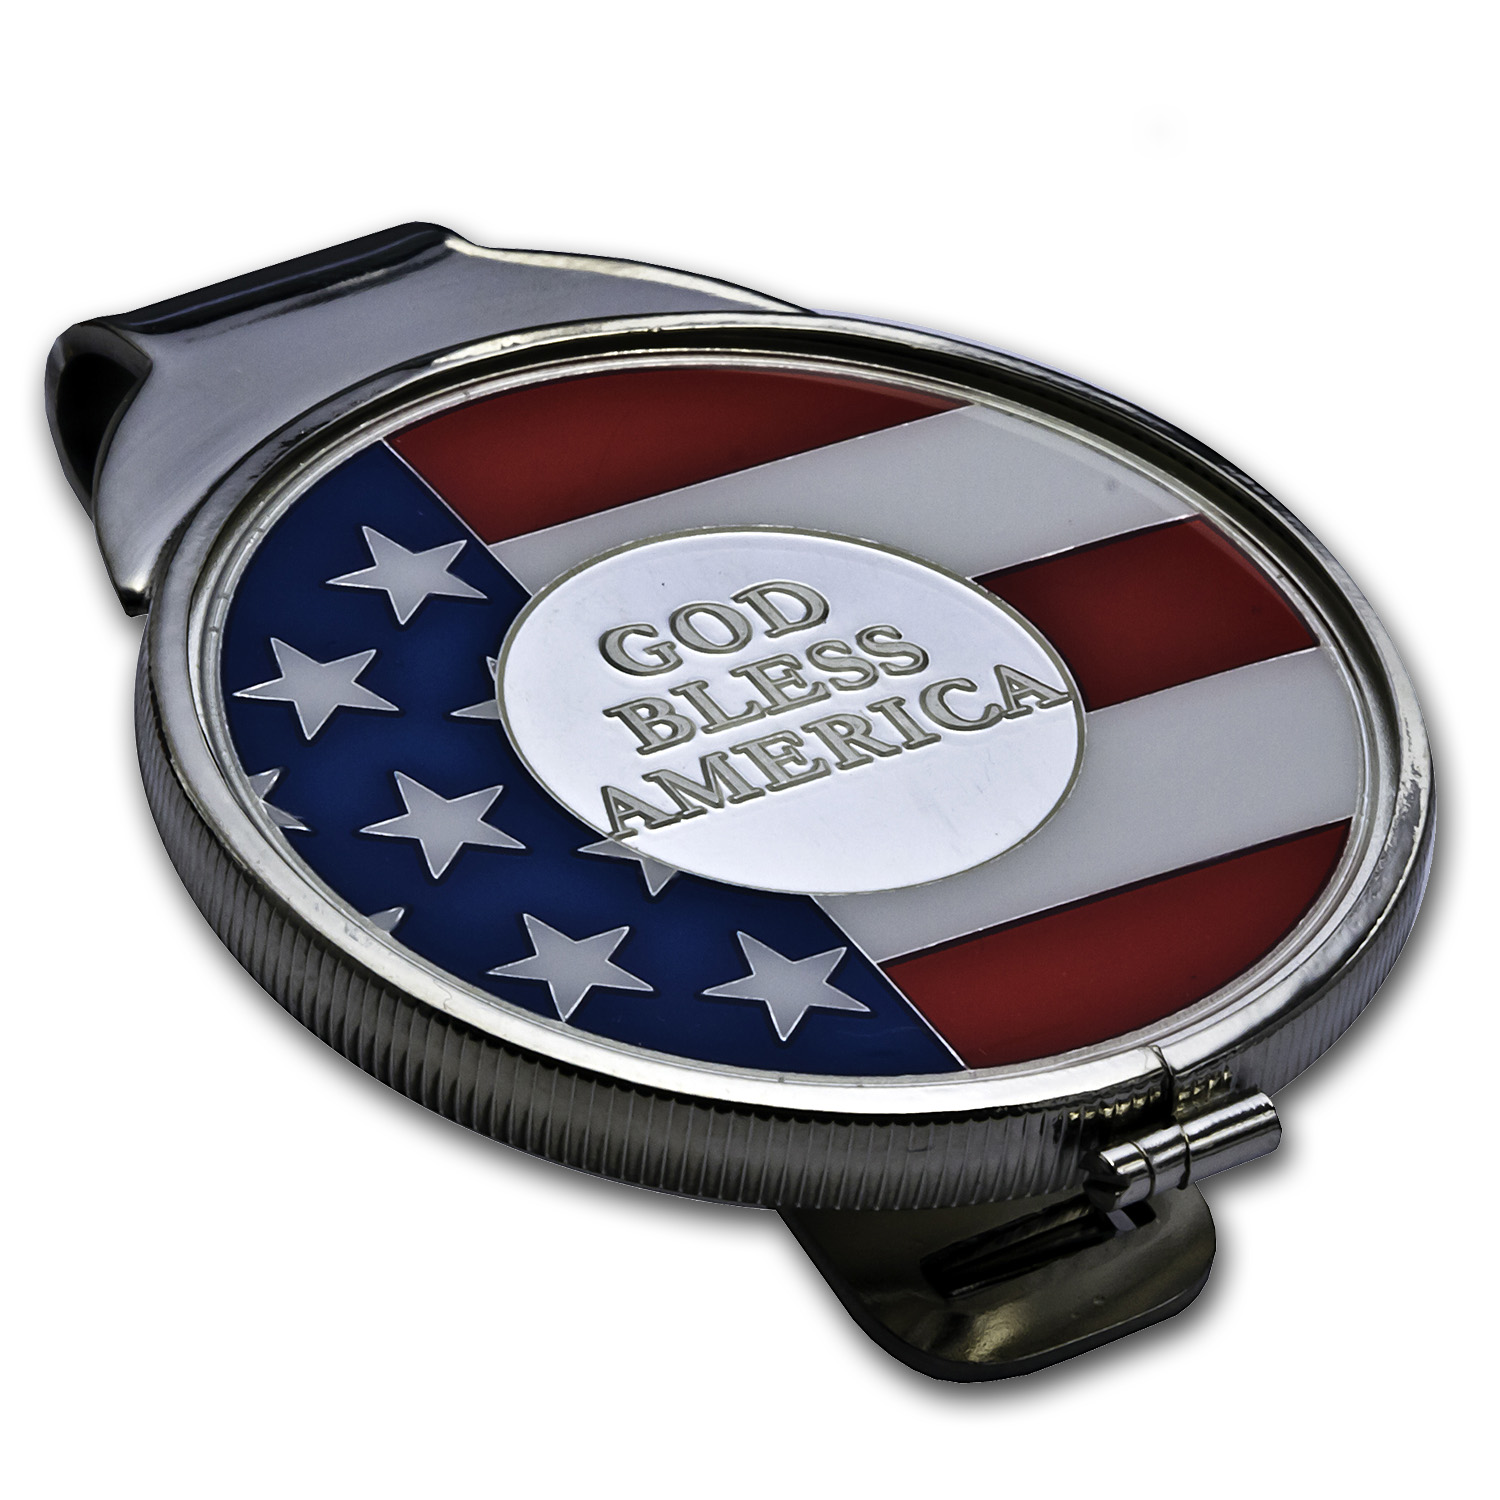 God Bless America Enameled Silver Round Money Clip